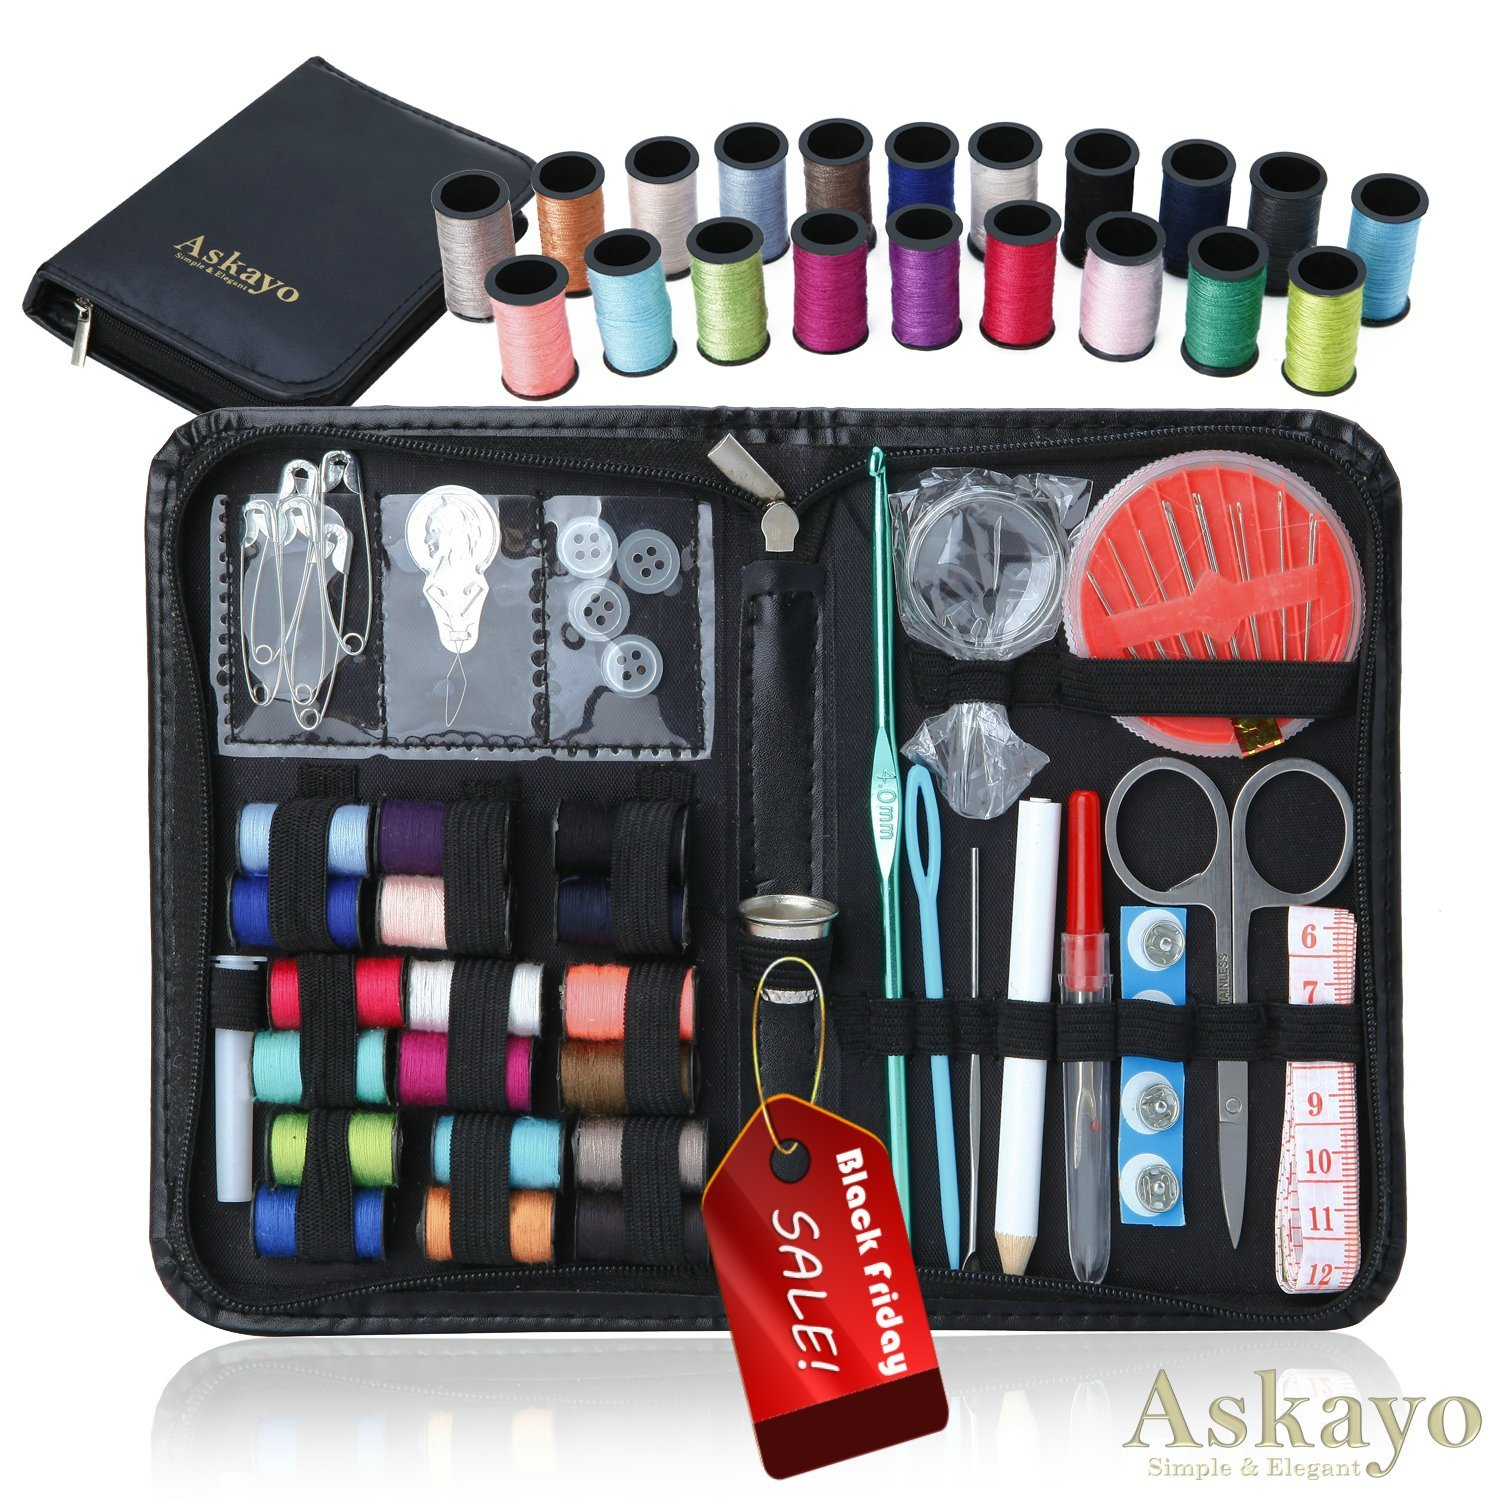 Askayo Sewing Clothing Repair Kit with Needles, Scissors, Thimble, 38-Count Colored Thread Spools and Zipper Carry Case Yiwu Pride Bag Factory 4336938098